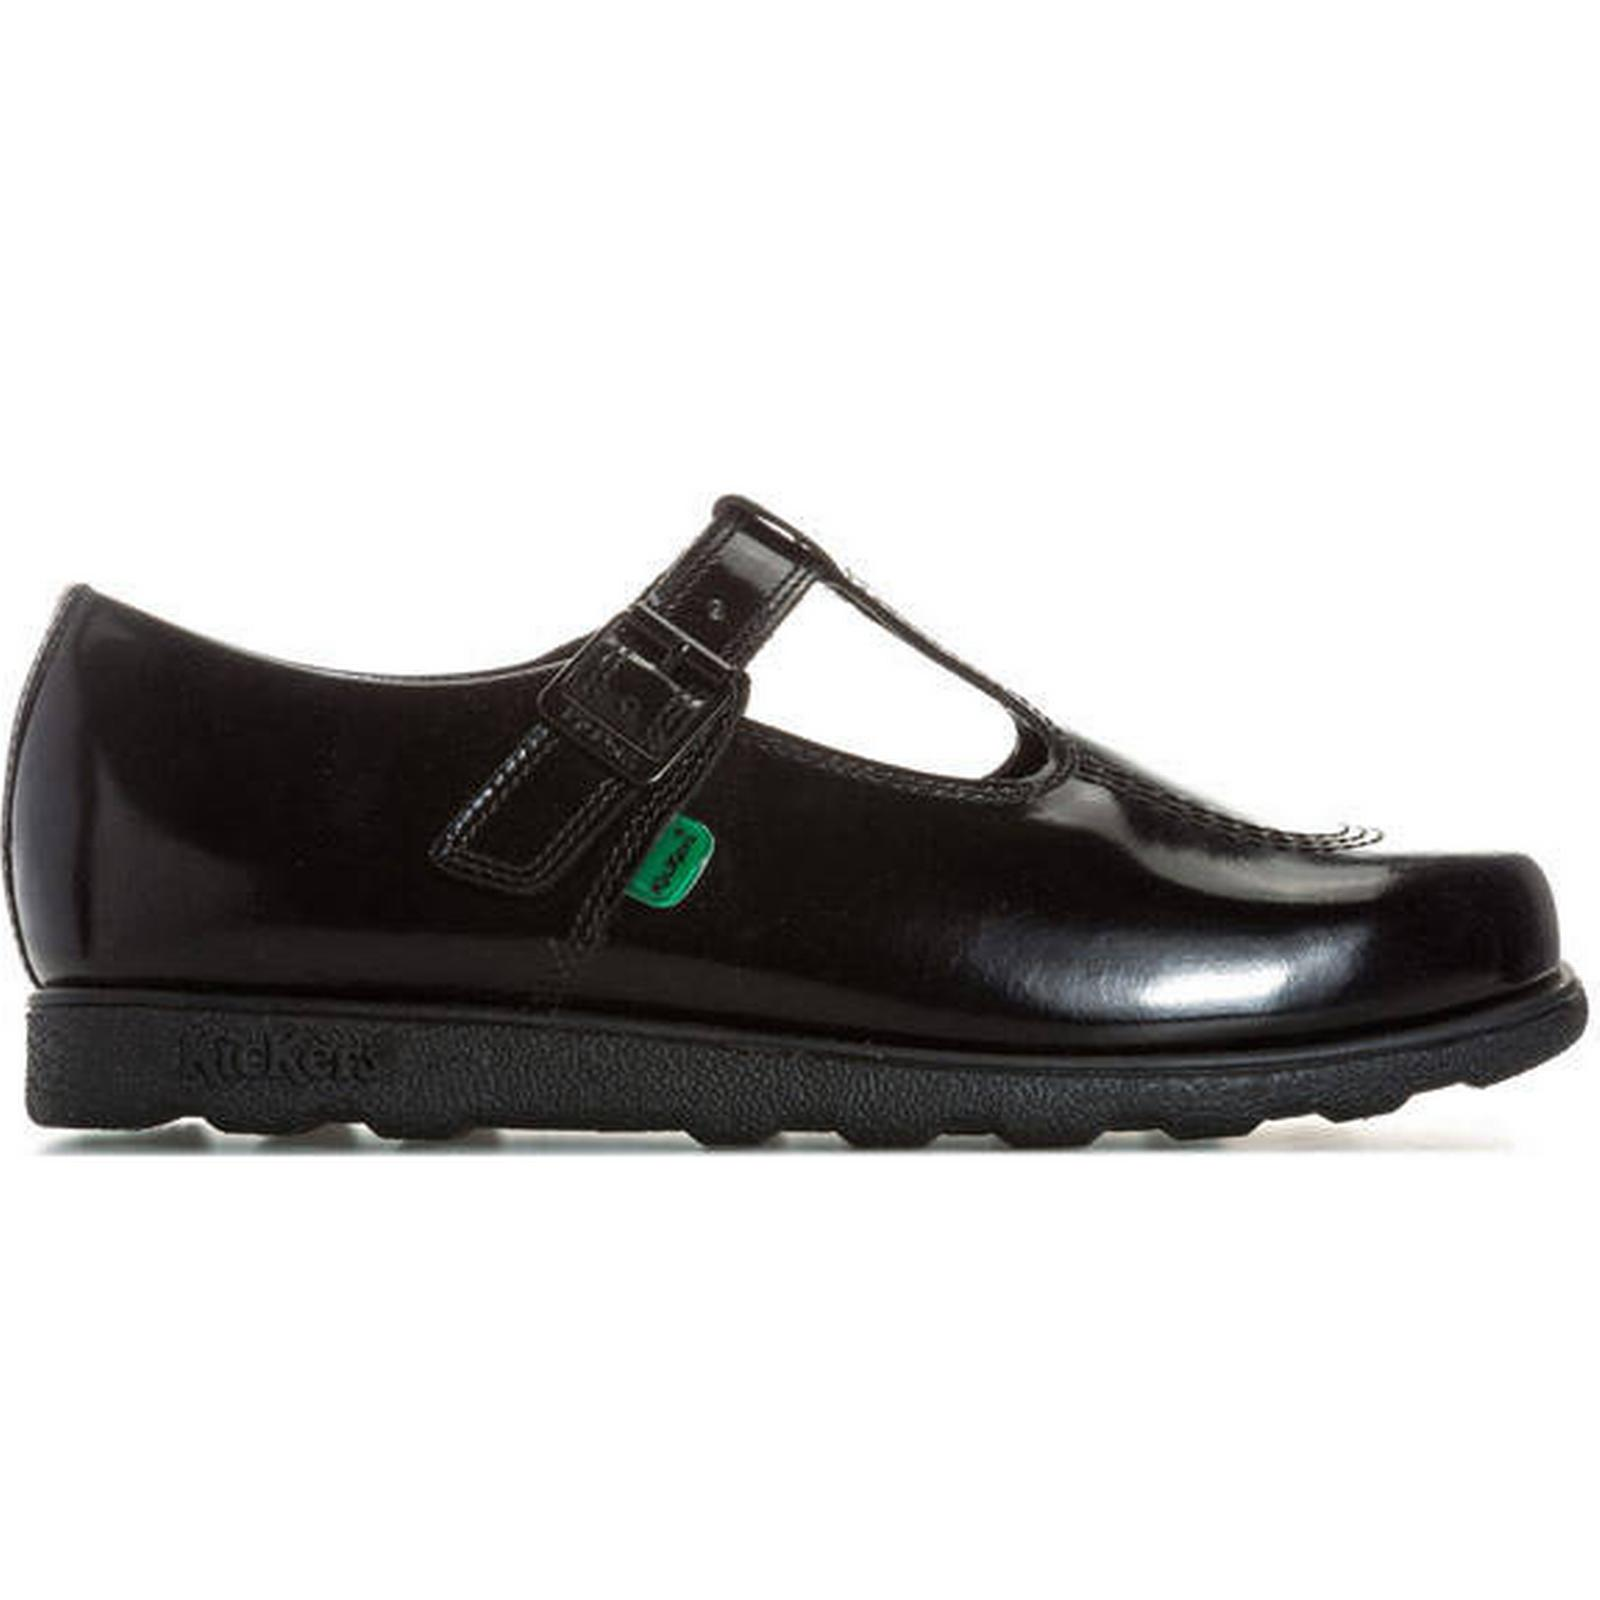 64.99 GBP Kickers Womens Fragma T in Patent Shoes Size 6 in T Black 50ba80